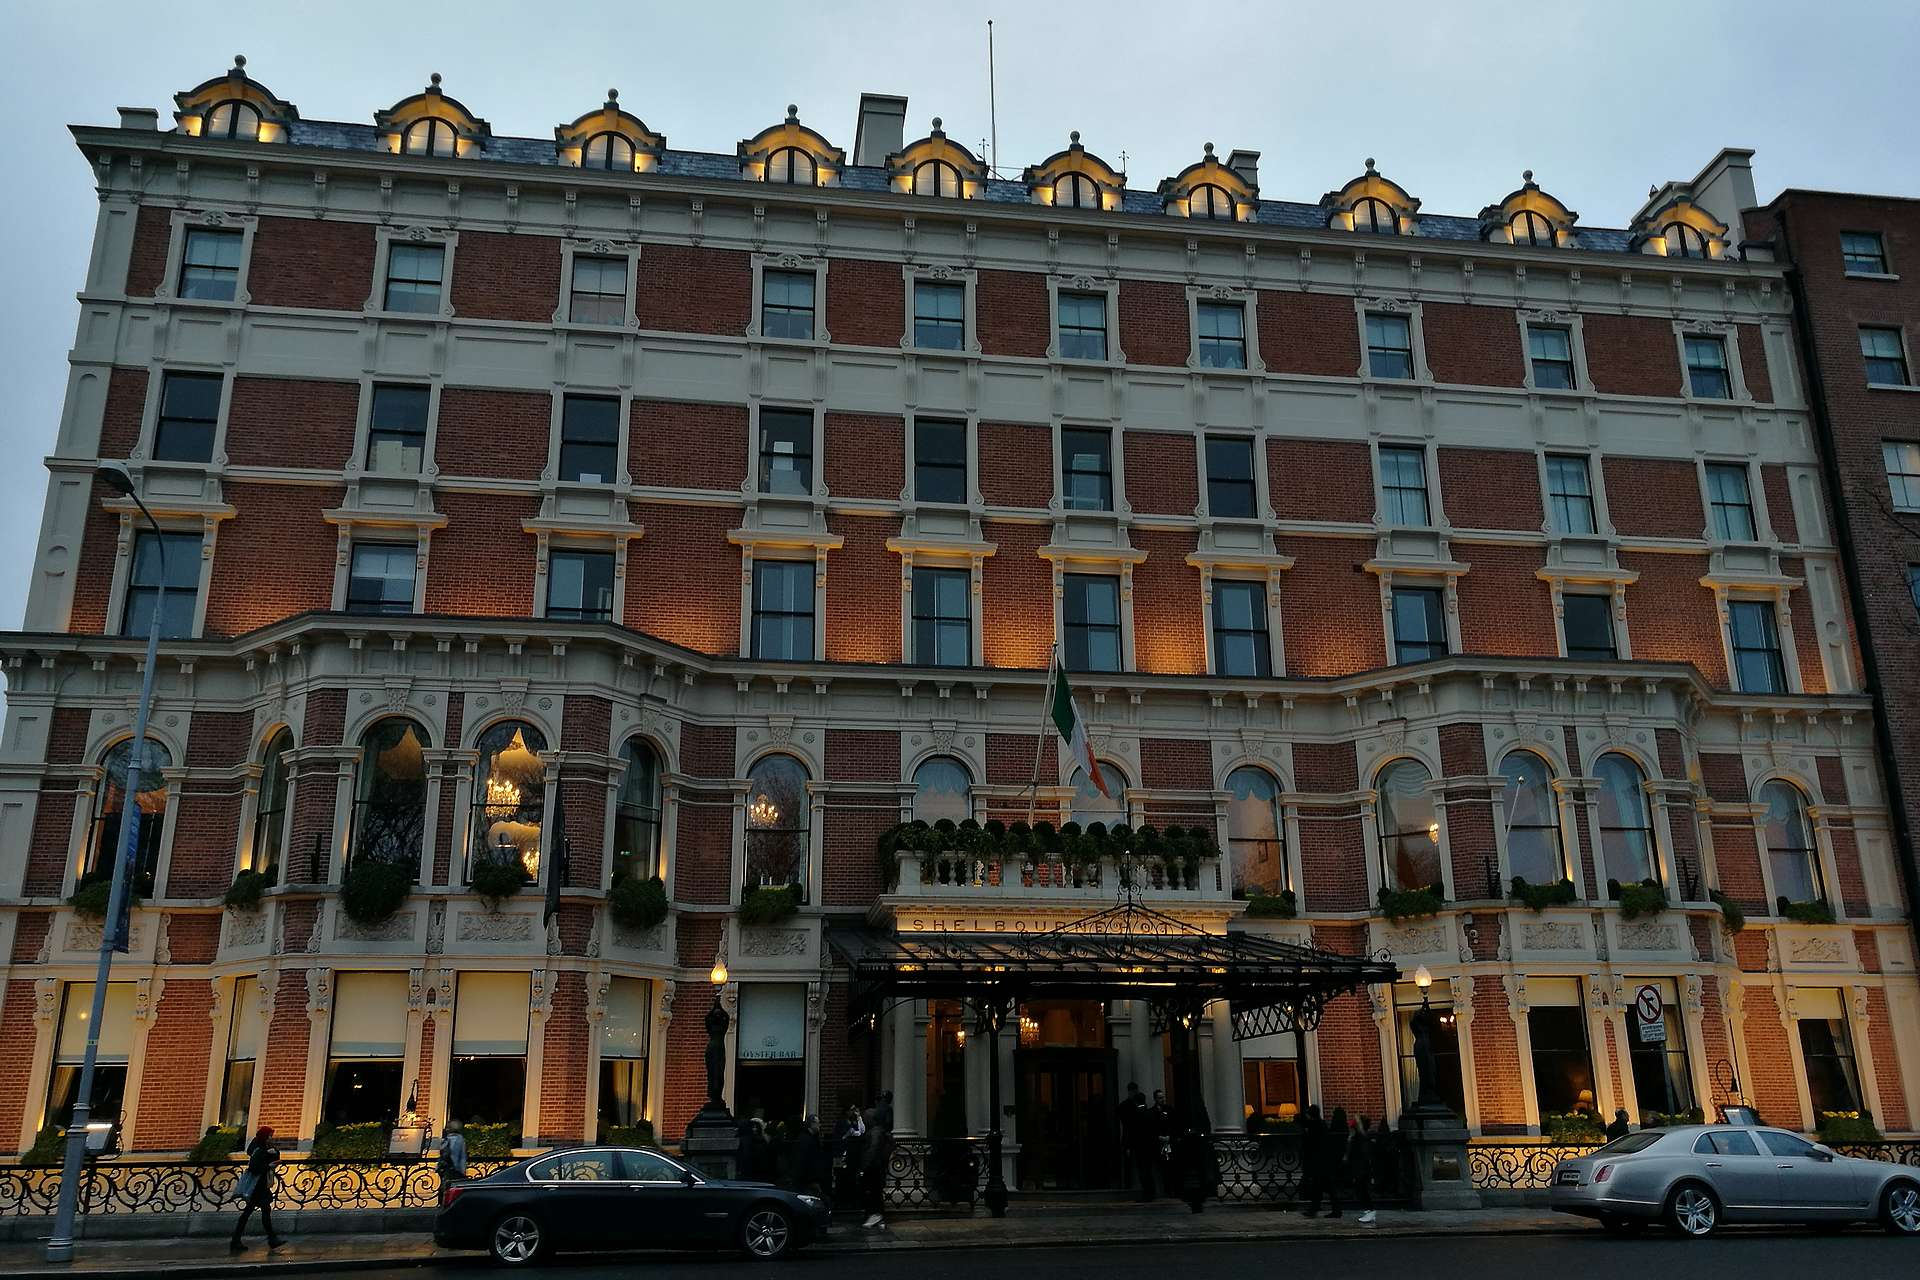 Dublin - The Shelbourne hotel